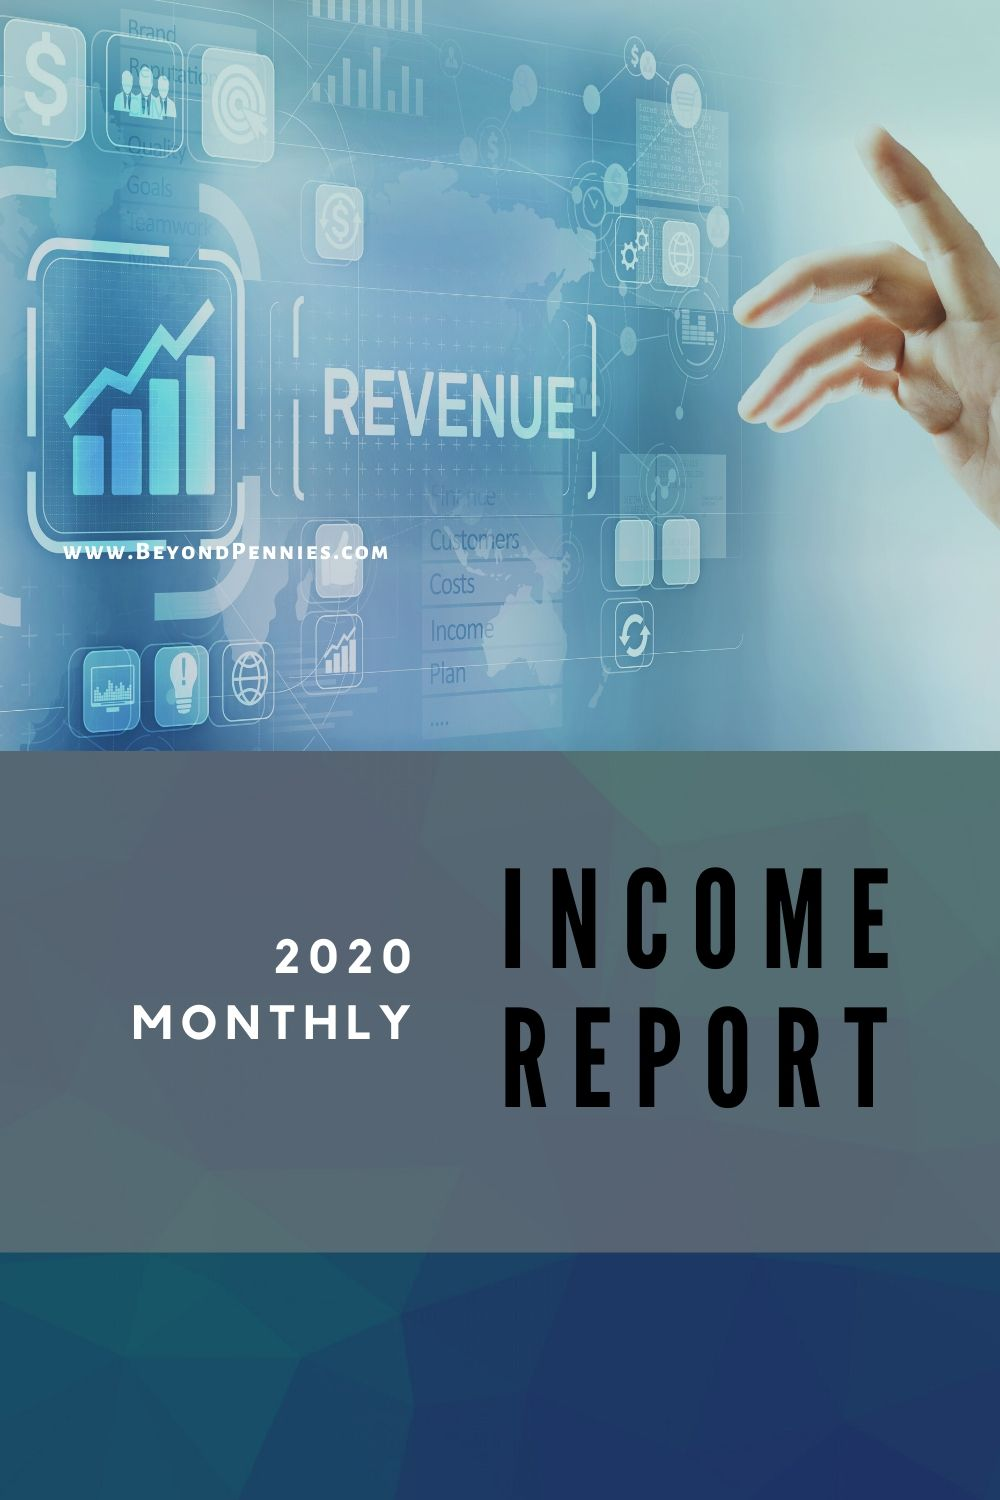 Mar 2020 Investment & Site Income Report